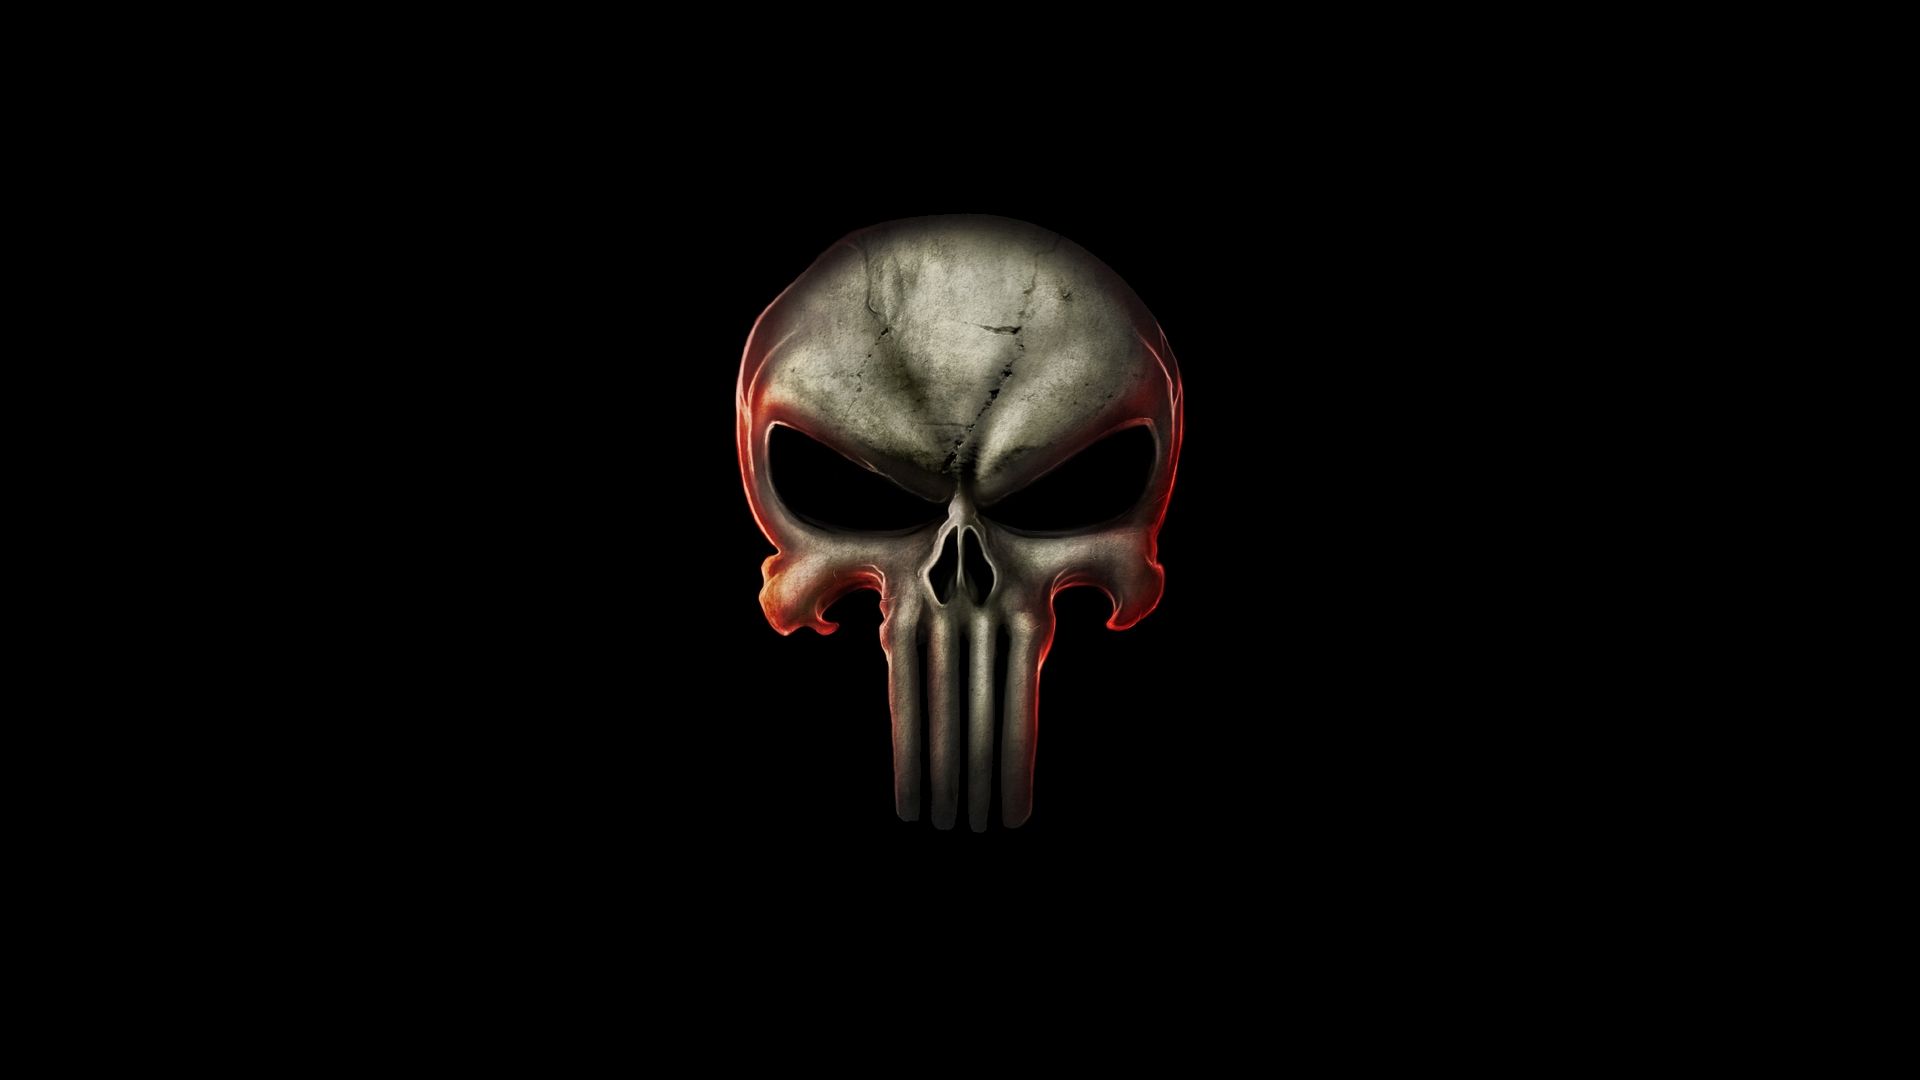 Pics Photos - The Punisher Ipad Wallpaper